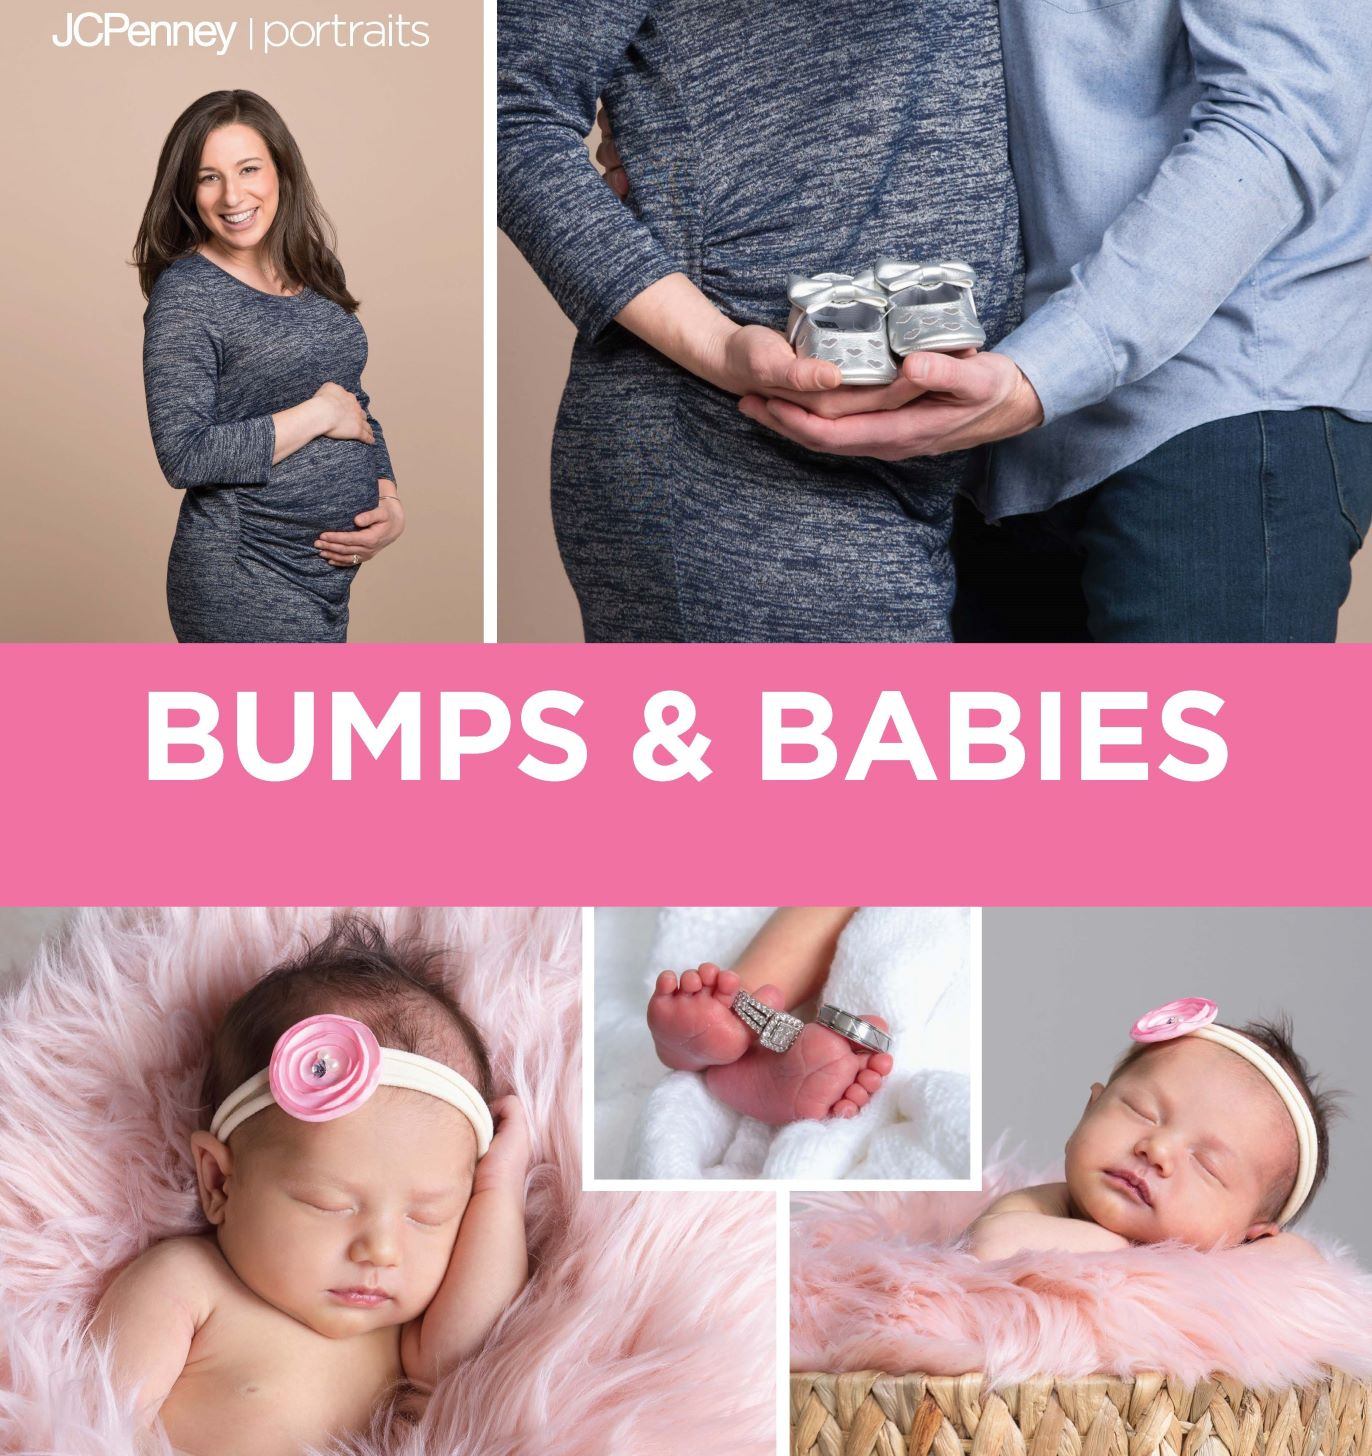 JCPenney Portrait's one-day Newborn and Maternity photo event on Thursday, February 20th